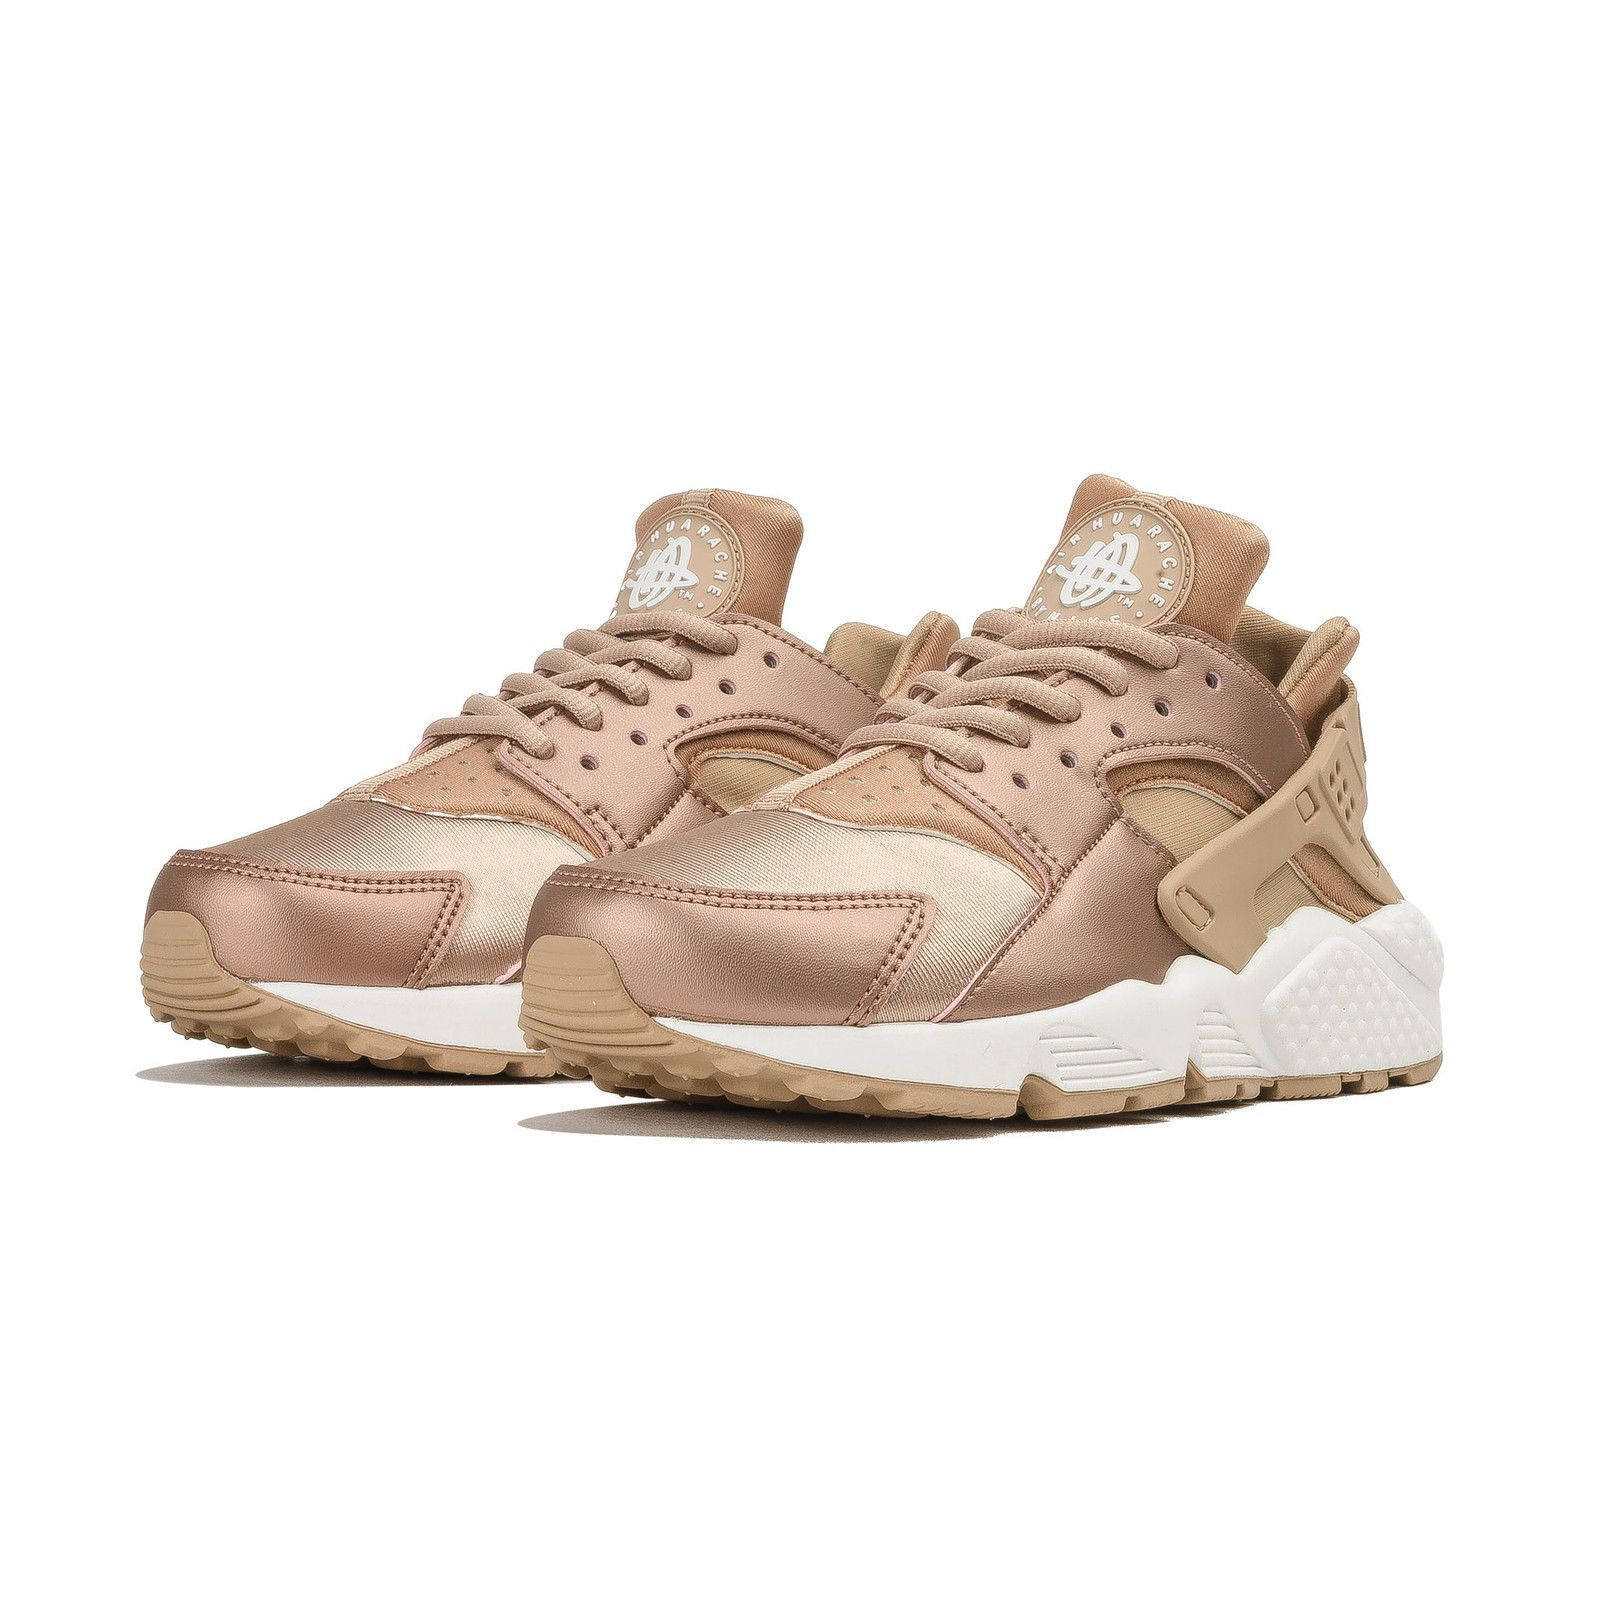 purchase cheap 83d65 4d21d ... Nike Air Huarache Run Se Women S Metallic Red Bronze Elm 859429-900 ...